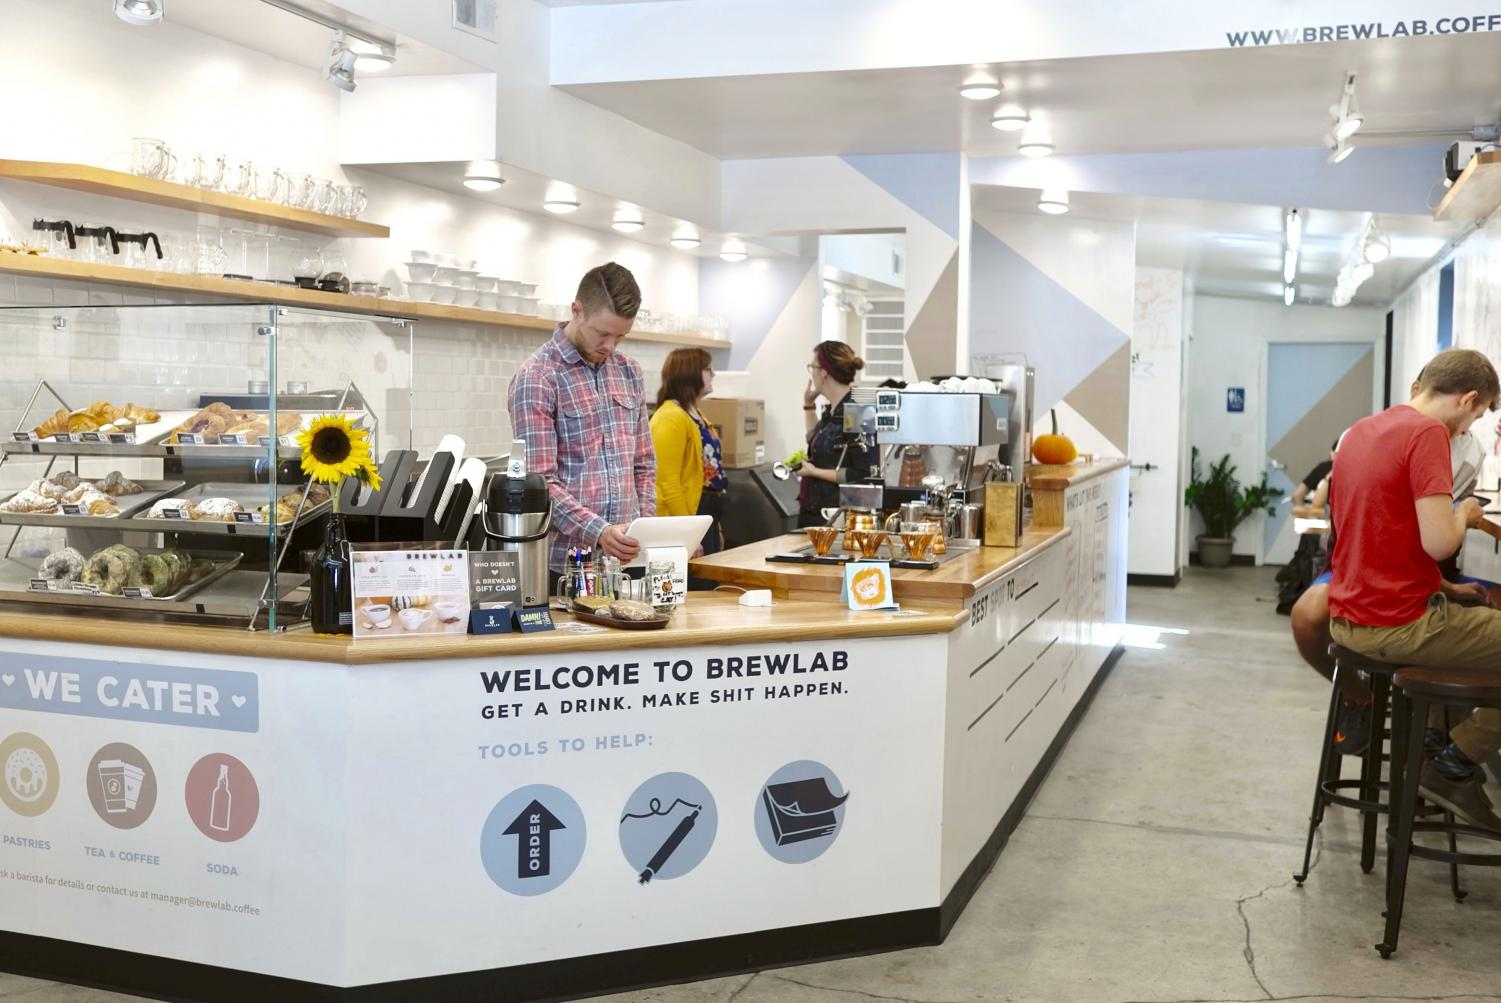 Brewlab offers specialty coffees, which are coffees  that have a distinct taste depending on where the coffee beans comes from. Brewlab, located at 630 S. Fifth St., is open from 7 a.m. to 7 p.m. during the week and 8 a.m. to 8 p.m. on the weekend.